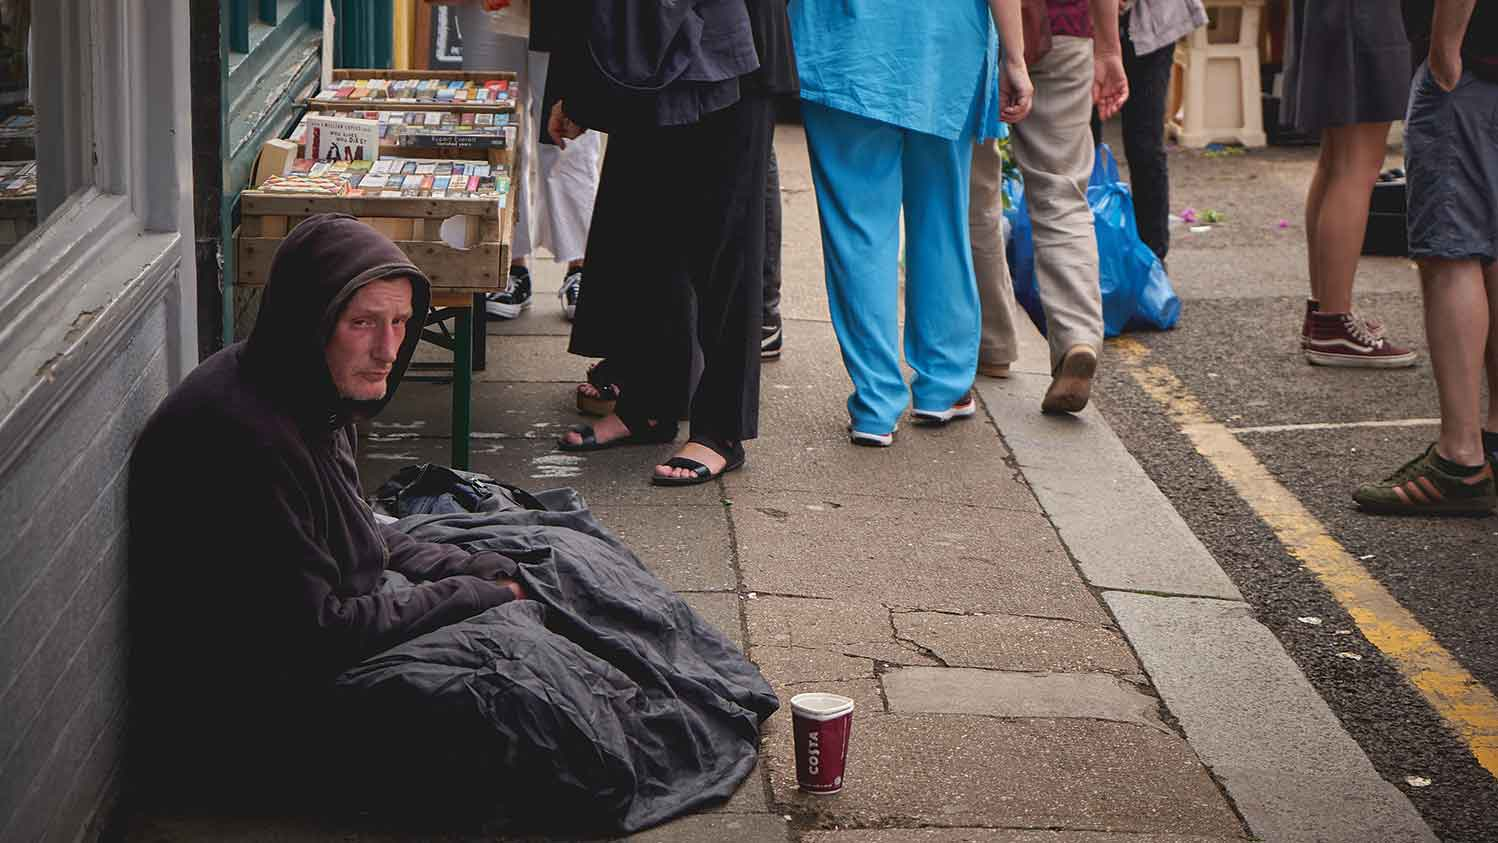 Homeless man sat on the pavement with a coffee cup for money in front of him